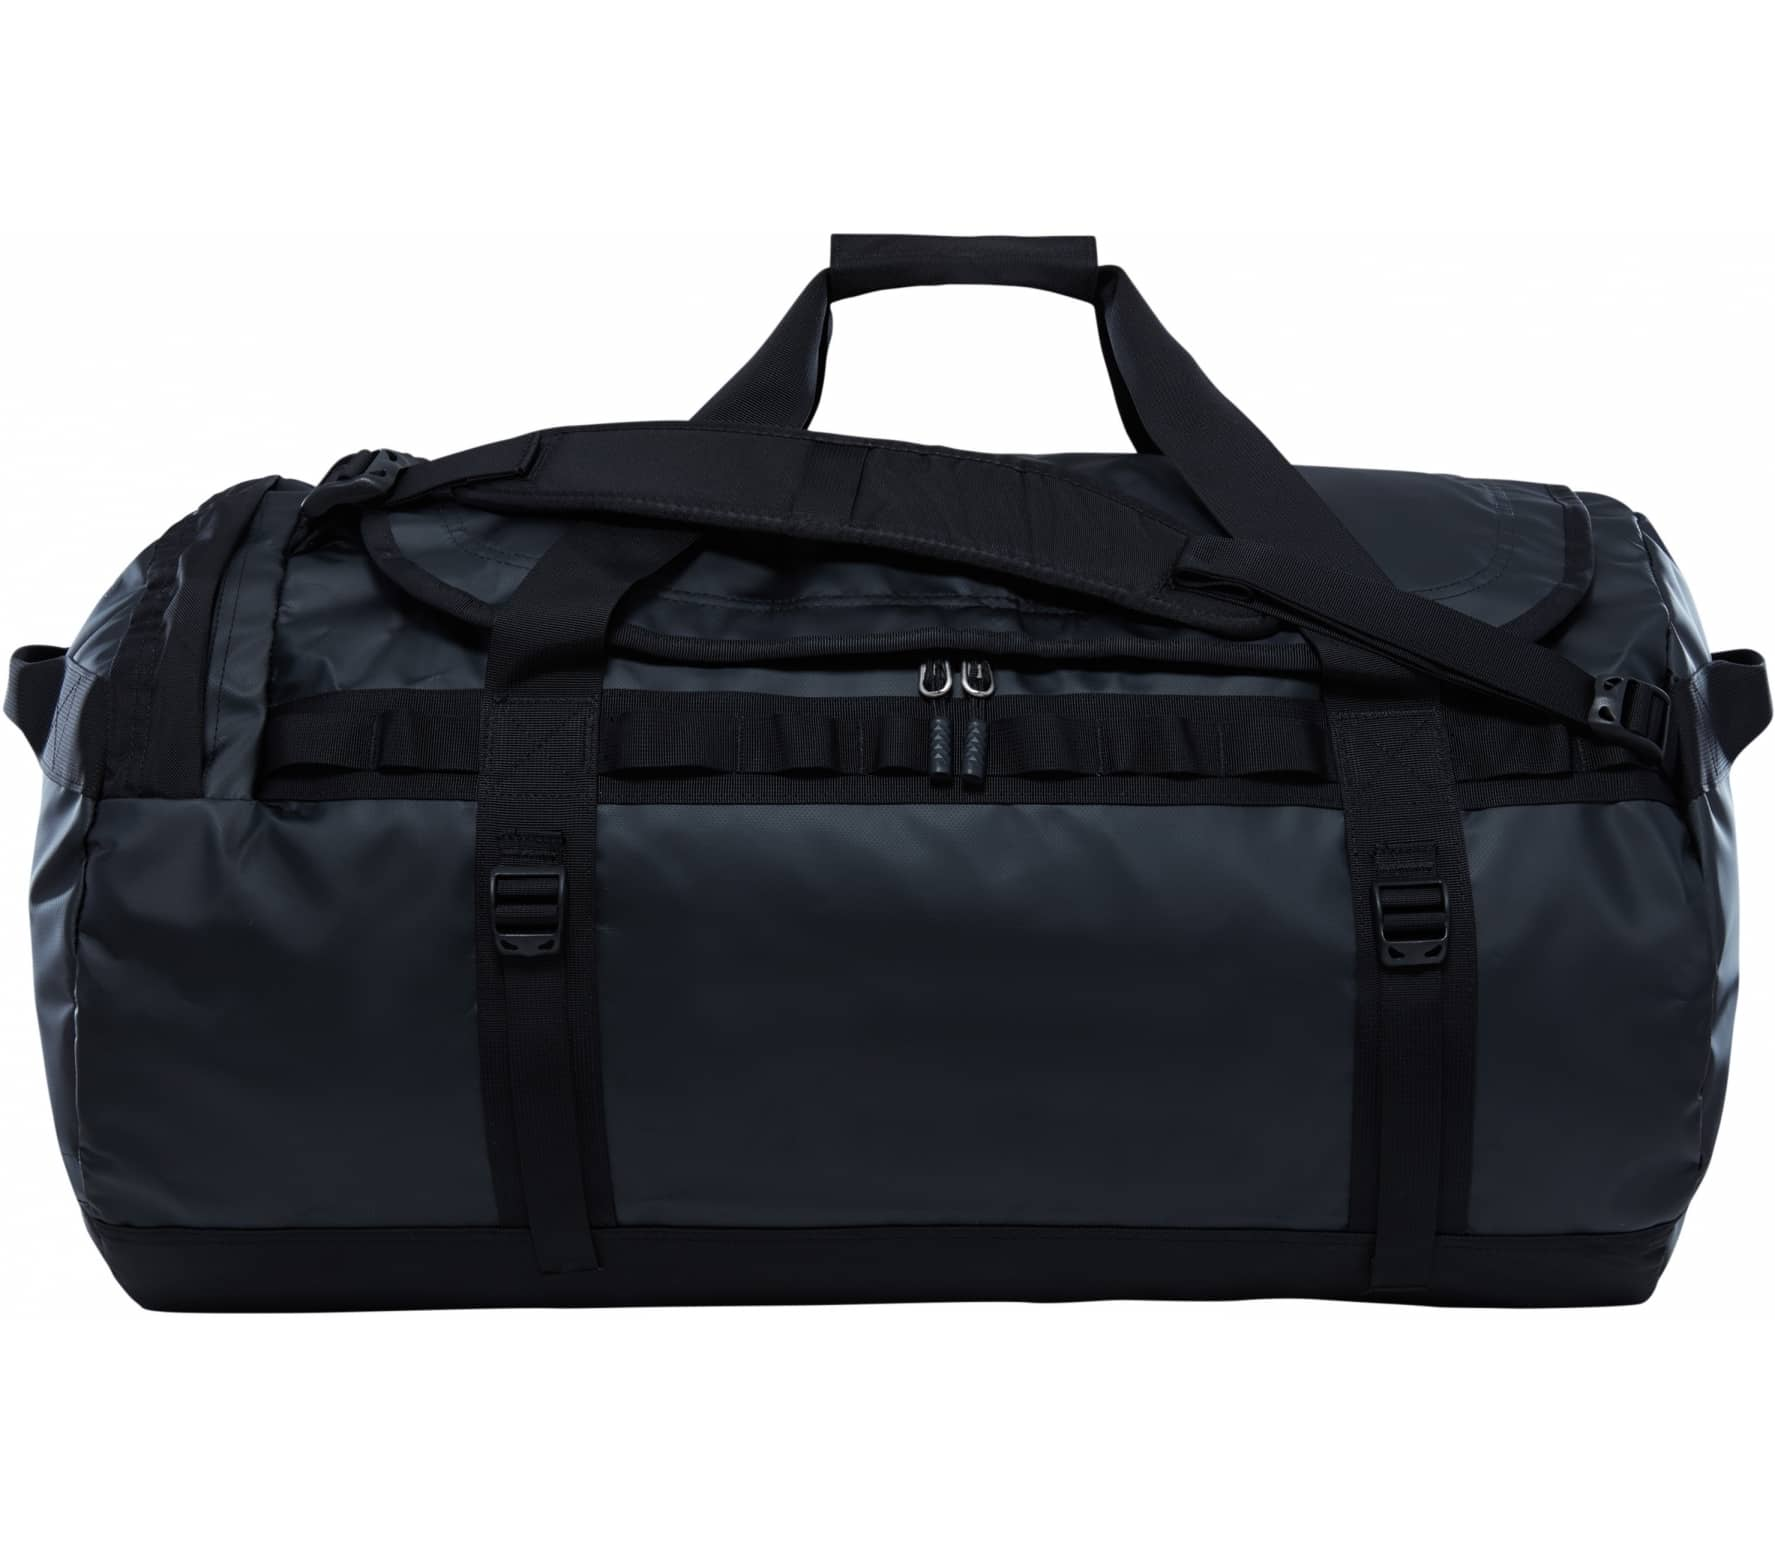 The North Face - Base Camp L - Update duffel bag (black) thumbnail